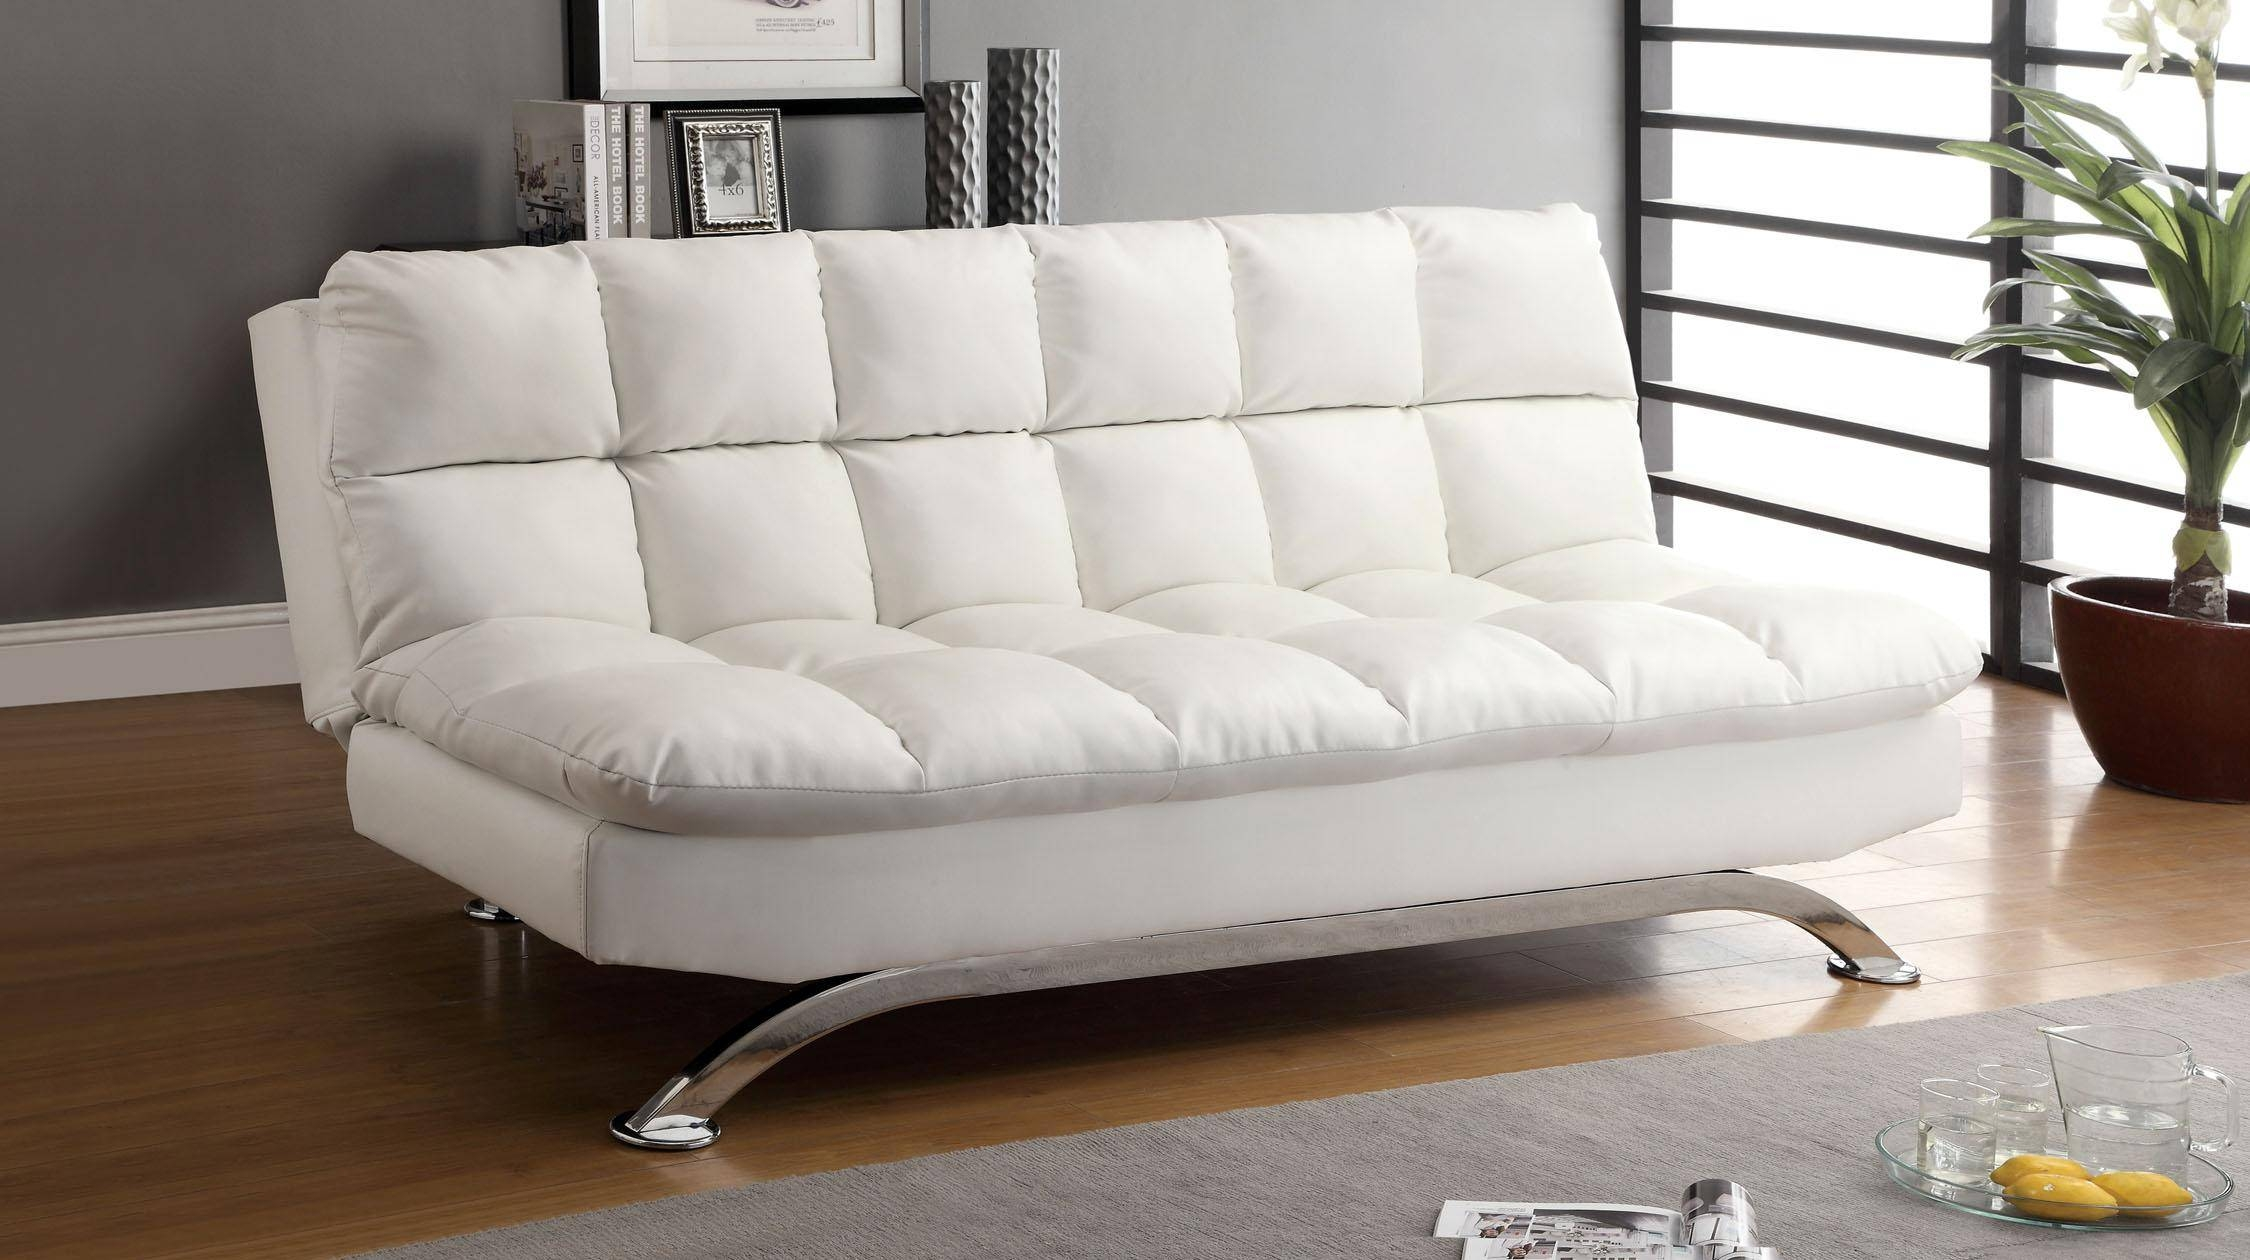 Convertible Sofa Futon | Tehranmix Decoration in Convertible Sofa Chair Bed (Image 8 of 15)